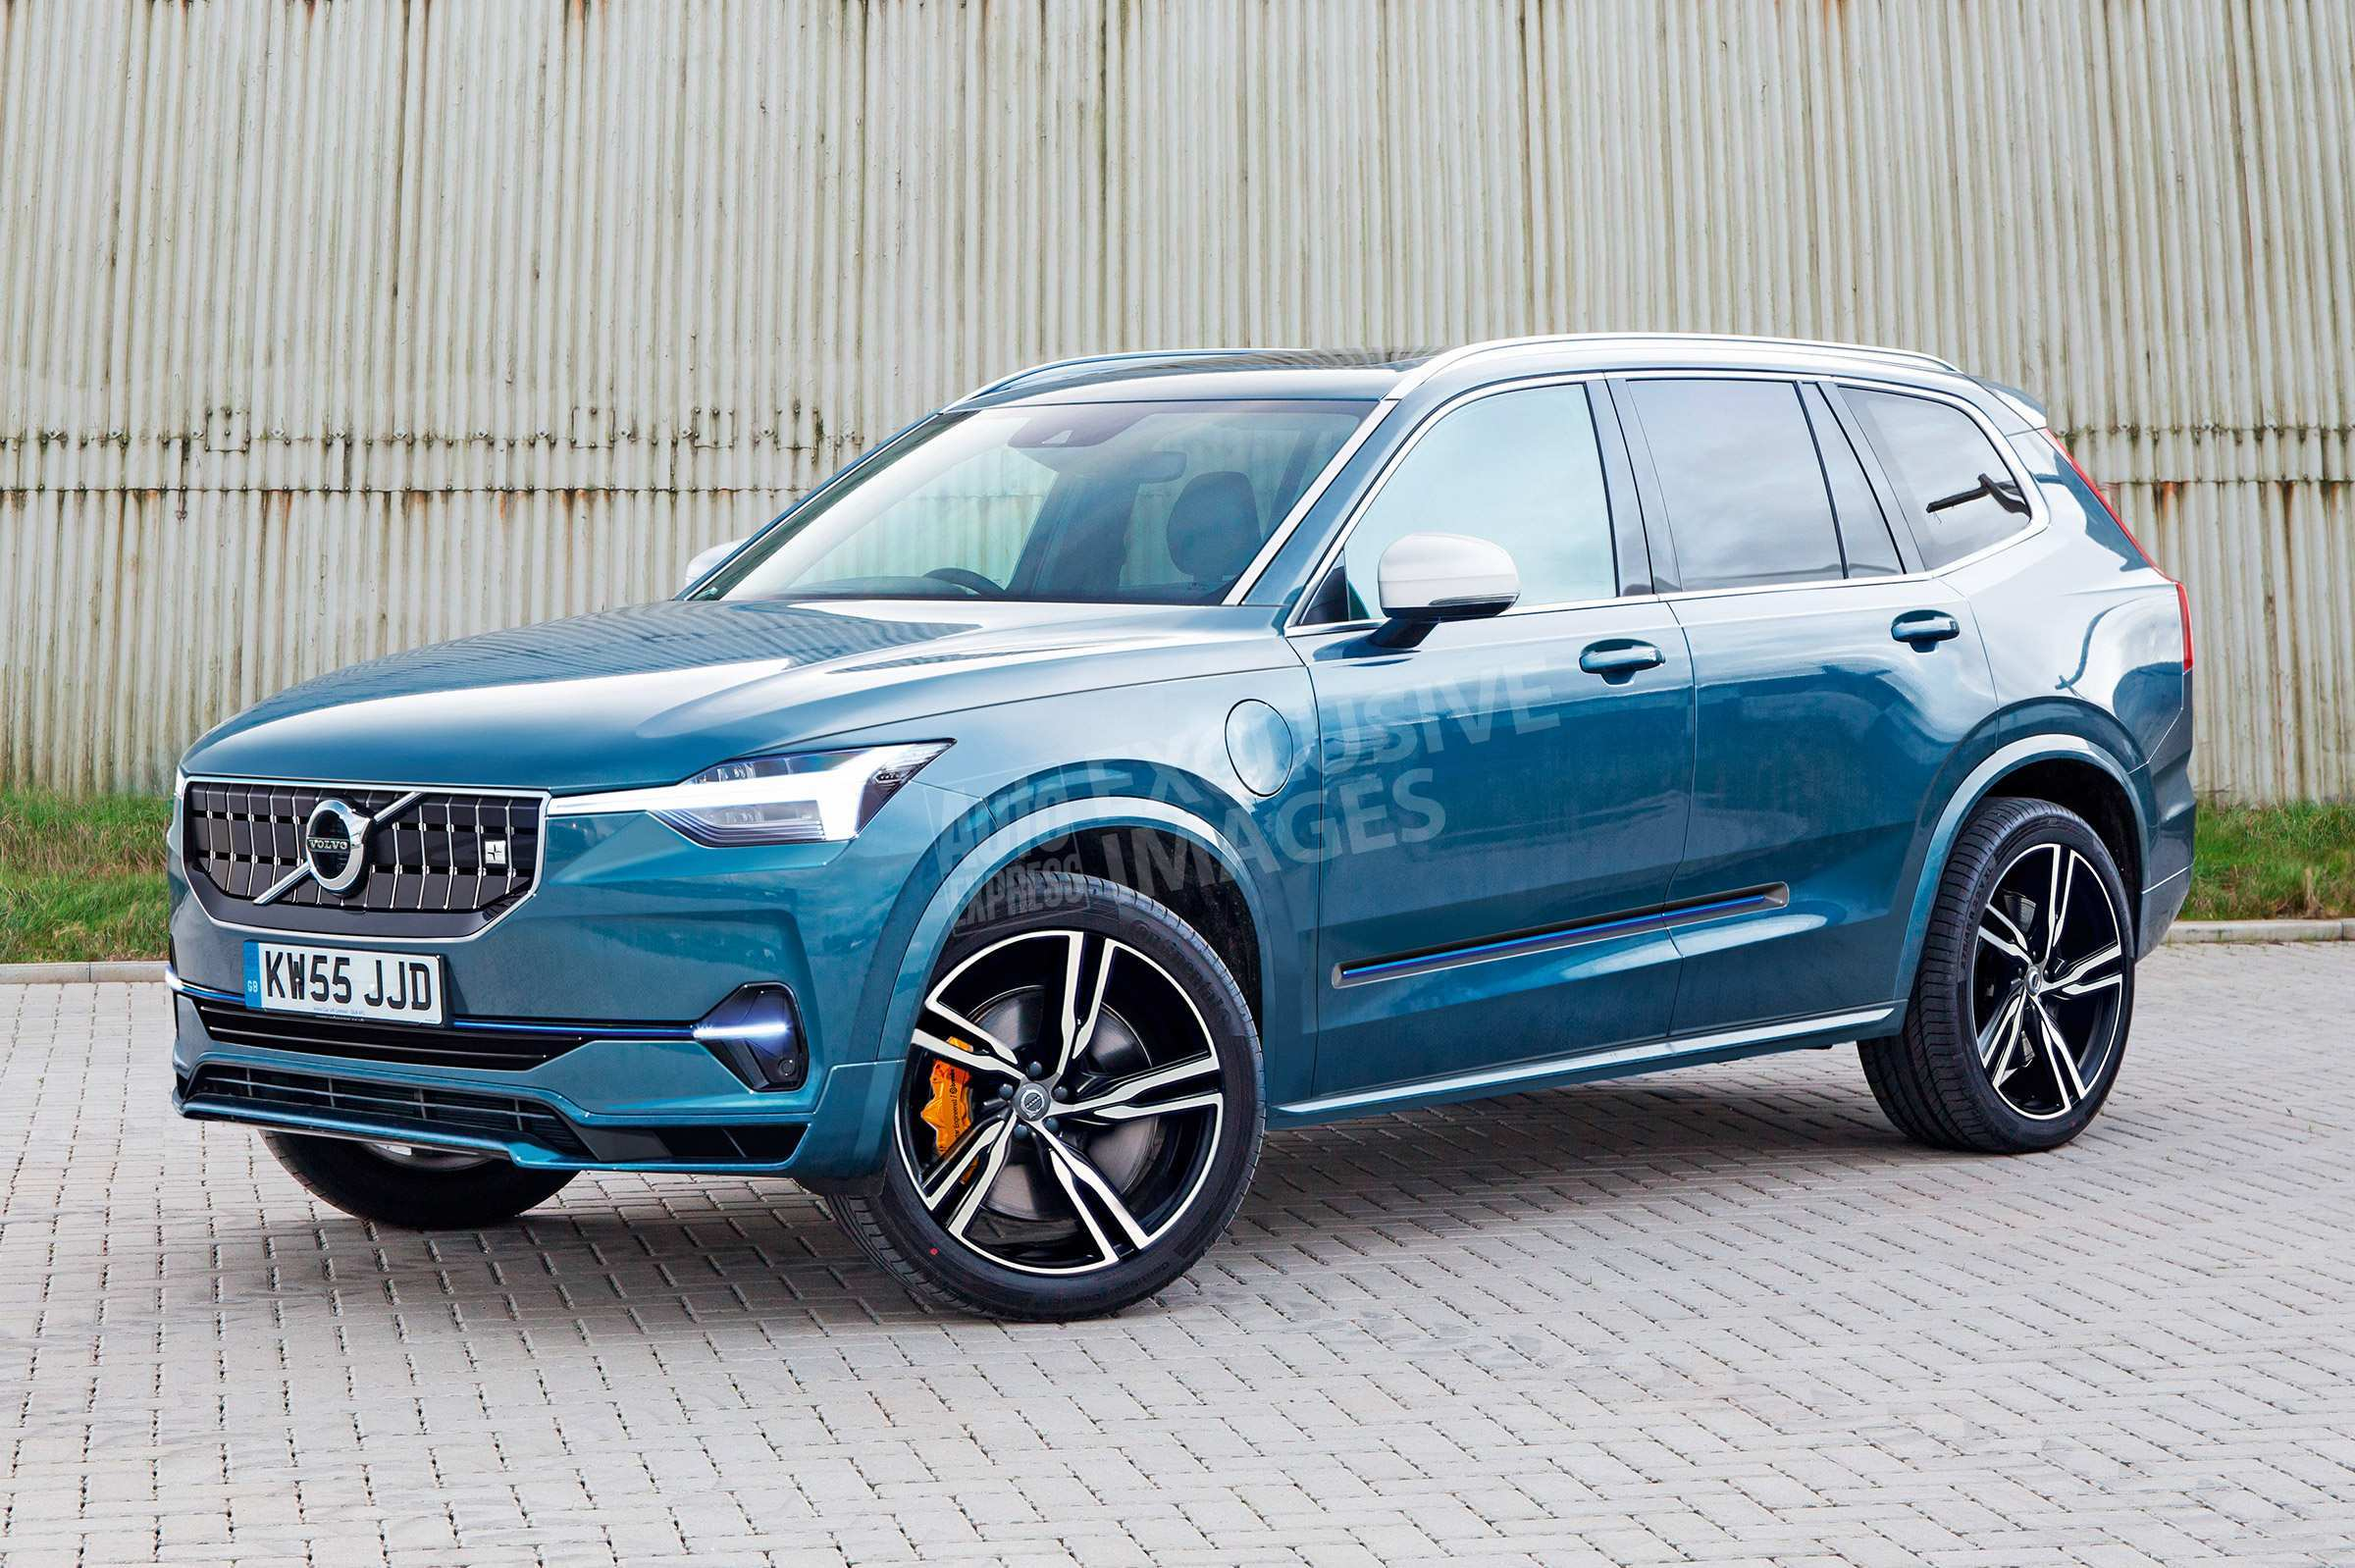 56 All New Volvo Car Open 2020 Redesign And Review